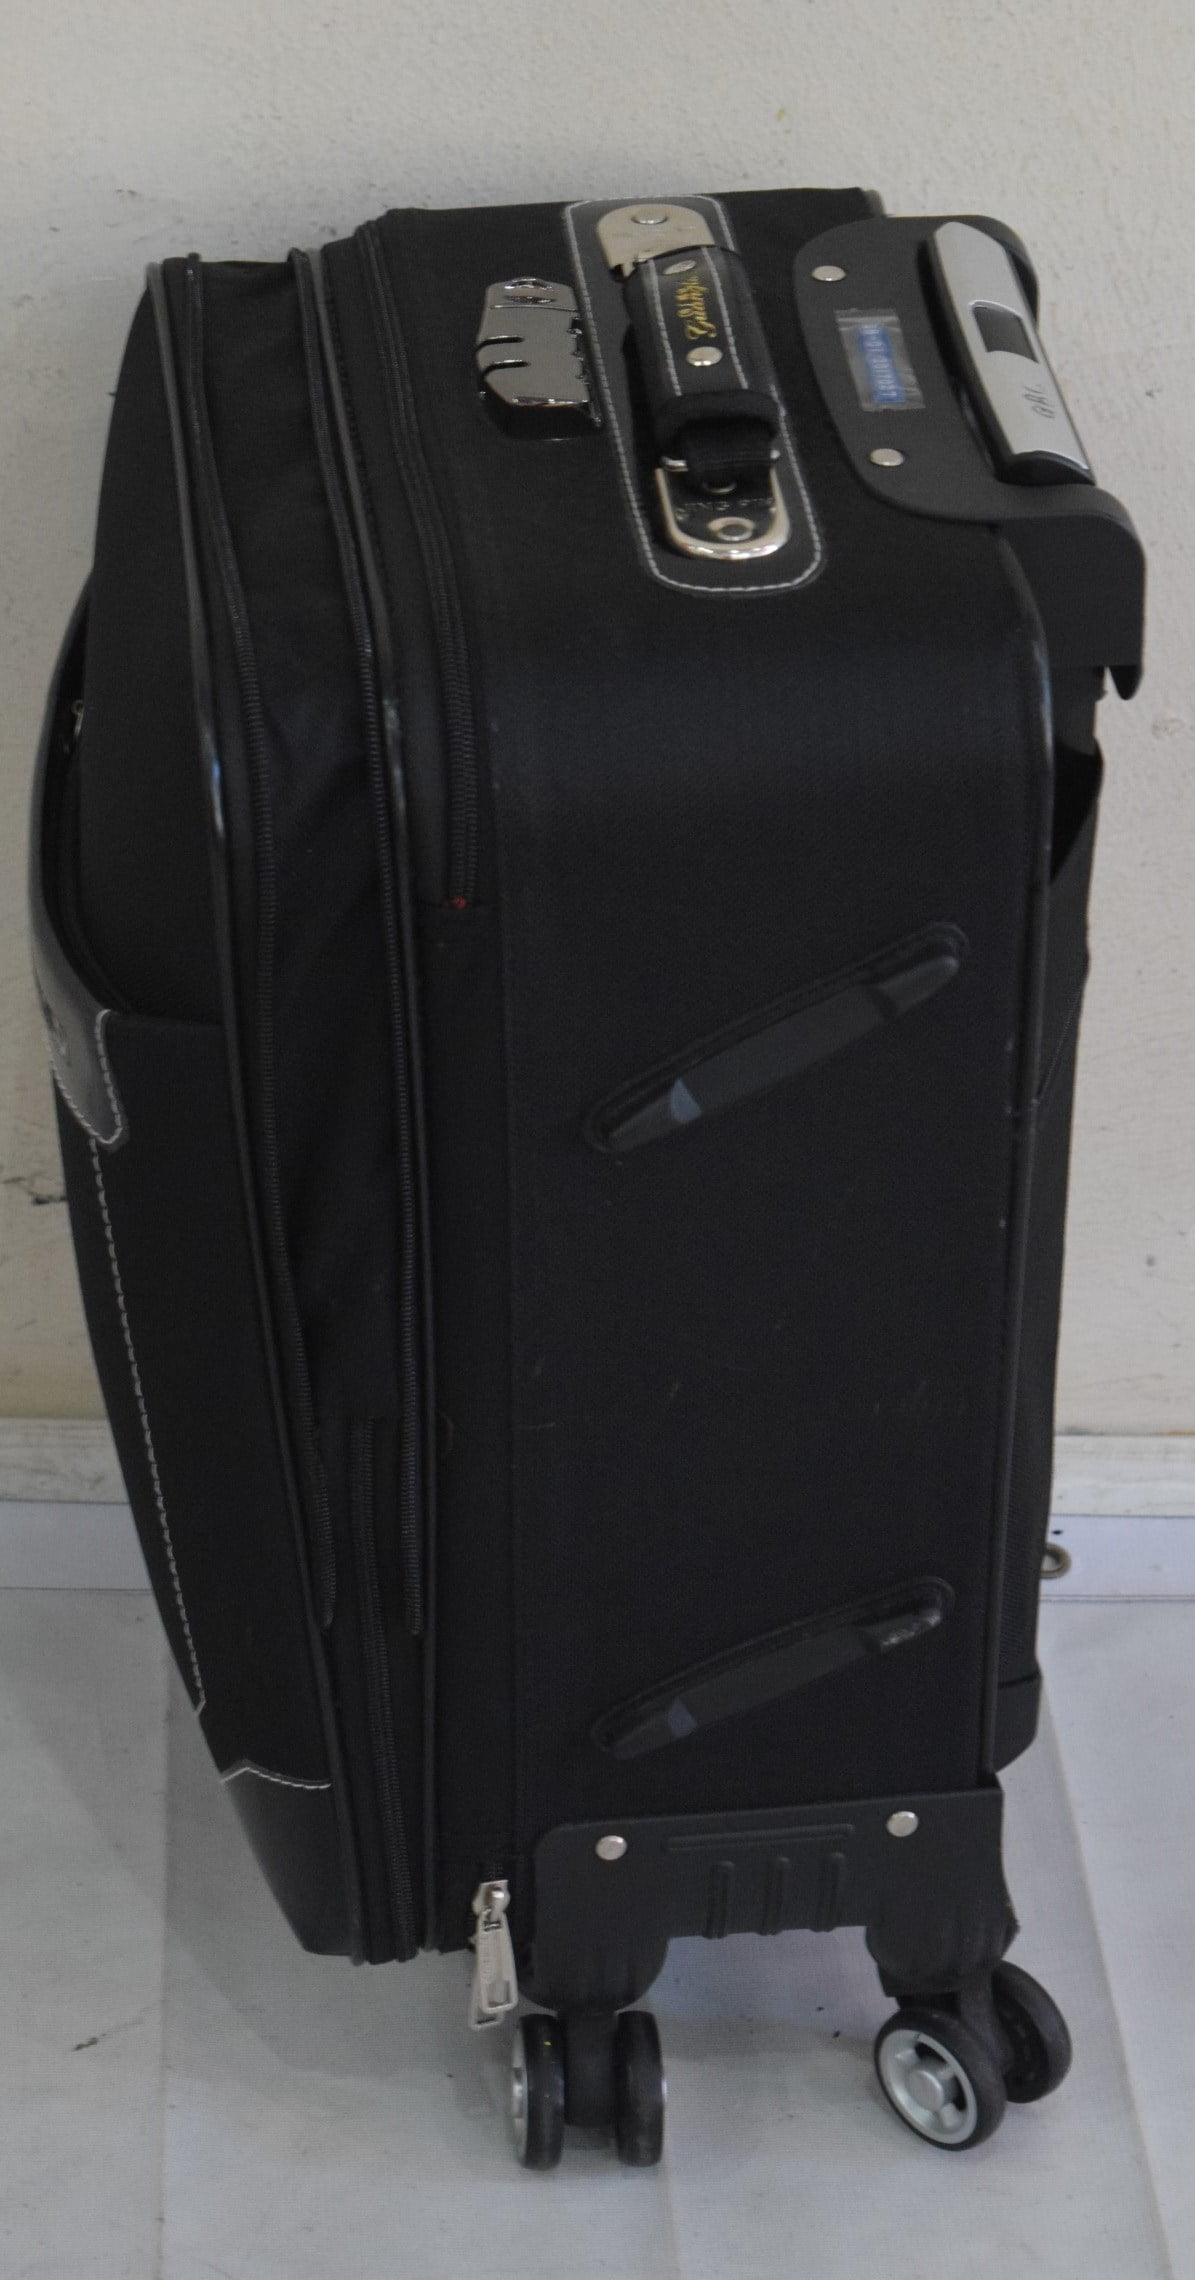 Luggage Bag for inflatables mascot